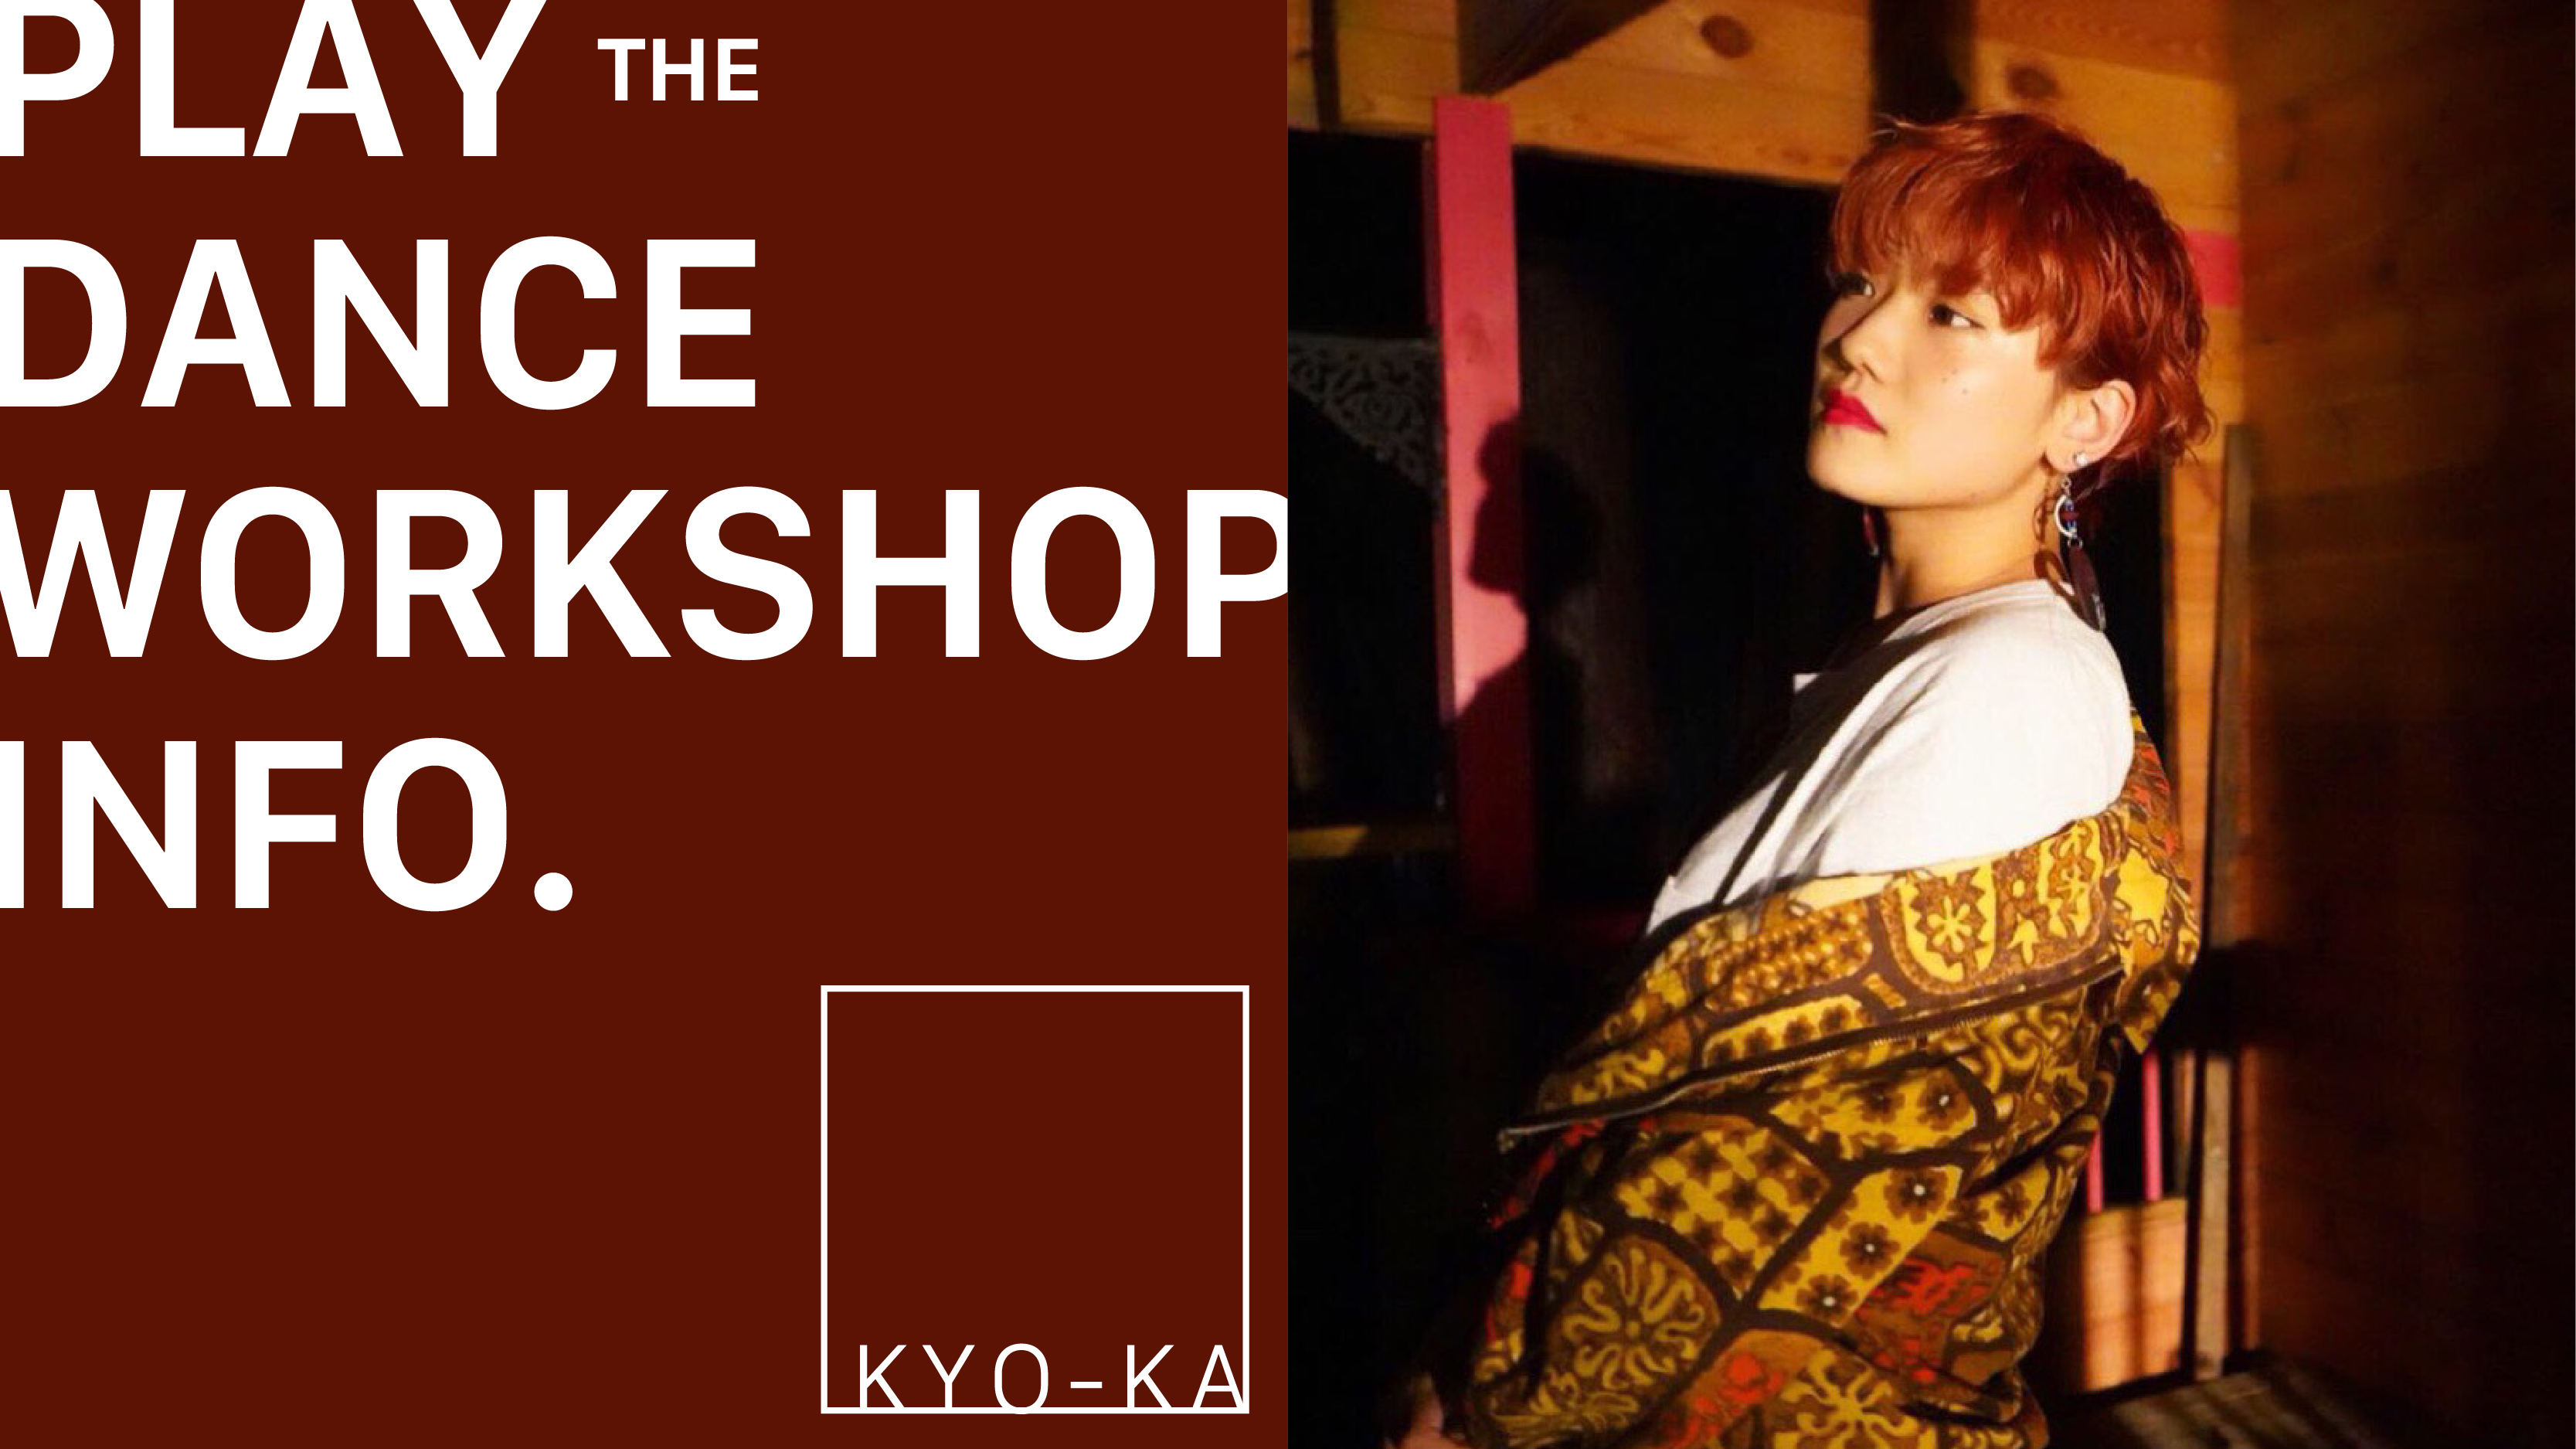 KYO-KA SPECIAL WORKSHOP